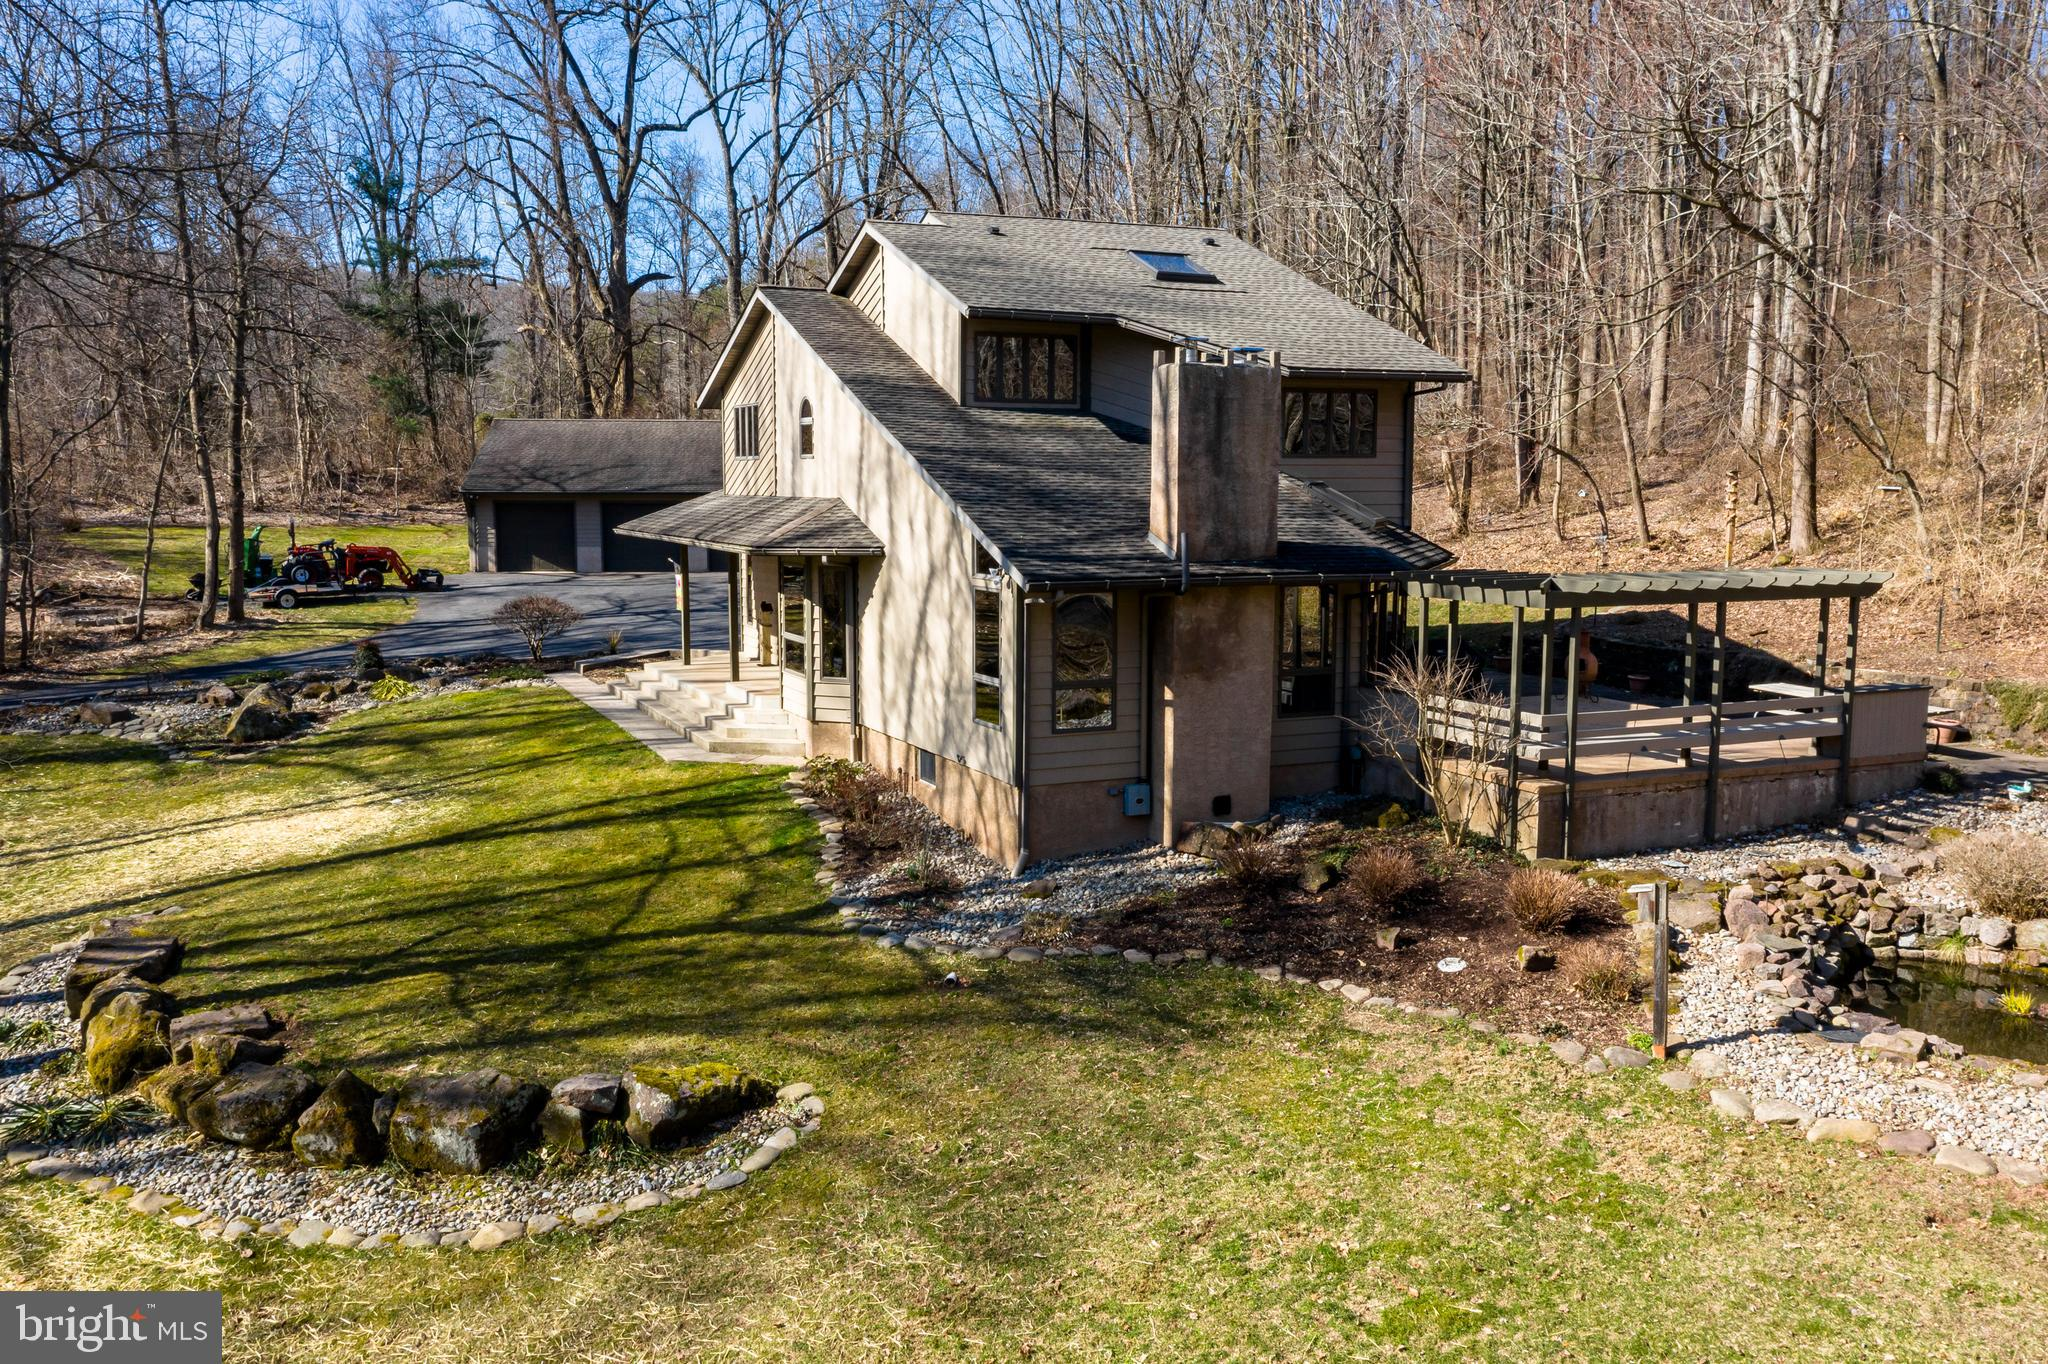 Have you been searching for your own piece of tranquility?  Offered by original owners for first time after 30 years.  This custom built contemporary home sits on 3 beautiful wooded acres in North Coventry township on Fernbrook Lane.   Enjoy watching wildlife and birds in any season.  Spring, summer and fall are perfect for sitting on back deck(complete with pergola) to soak up the peace and quiet listening to waterfall at the ornamental man-made pond. This personal oasis is within short walking distance to Coventry Woods Park and open space consisting of 688 acres of mostly mature deciduous forest!  The unique open floor plan provides abundant light throughout the 3 bedroom 2 ½ bath home in award winning Owen J Roberts SD.  Kitchen features include tile floor, deep window (great for growing herbs or flowers)  and large peninsula.  Kitchen is open to dining room and living room with hardwood floors and vaulted ceiling. Welcoming foyer with tile floor, powder room and laundry room are also found on first floor.  Main bedroom has vaulted ceiling, two large closets and full bath.  Full bath has double sinks, tile floor, built in medicine cabinets and skylight.  Two additional bedrooms, full bath and plenty of closet space can also be found on this floor.  Second floor carpet just replaced.  Central air and whole house fan available for comfort in summer months.  Wood stove in basement to supplement heat in winter if you choose.  Basement currently has small hair salon with separate outside entrance and powder room.   Easily converted to home office, workout room or that extra space if needed for family room. There is oversized one car built-in garage AND 3 car detached garage complete with propane heater and electric! All of this located within an hour from King of Prussia, Reading or Exton!